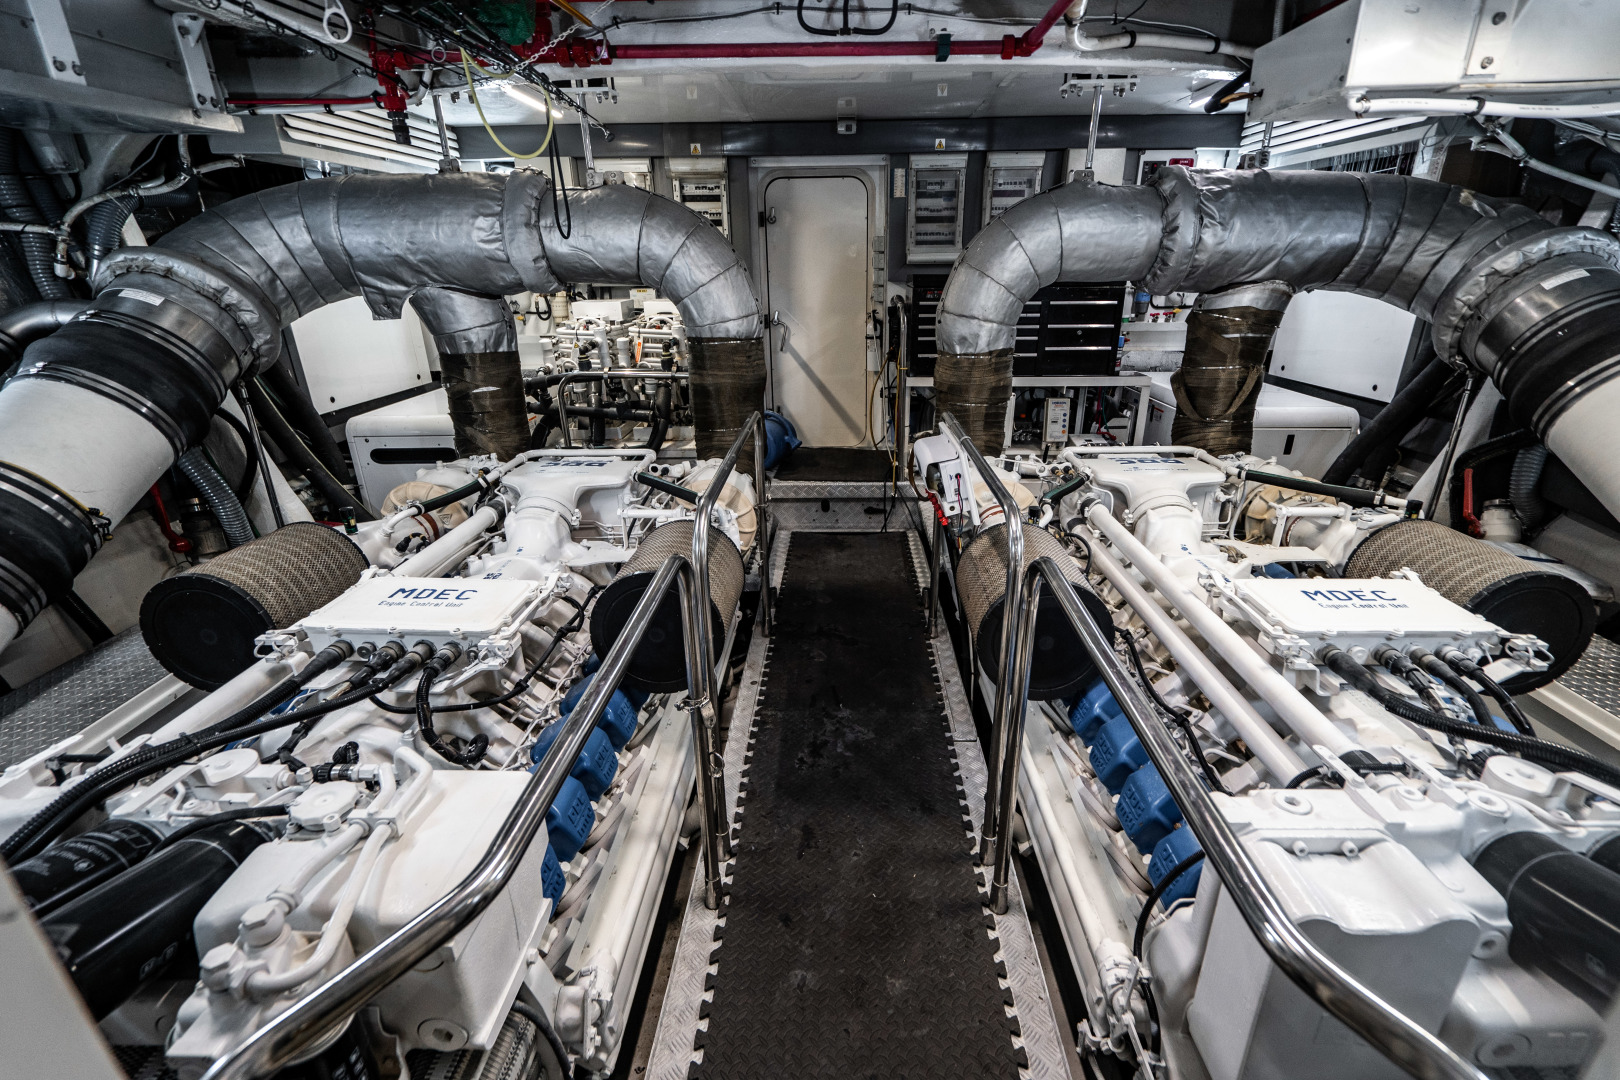 Sunseeker-94 Yacht 2003-SWWC Florida-United States-2003 Sunseeker 94 Yacht Engine Room-1491575 | Thumbnail